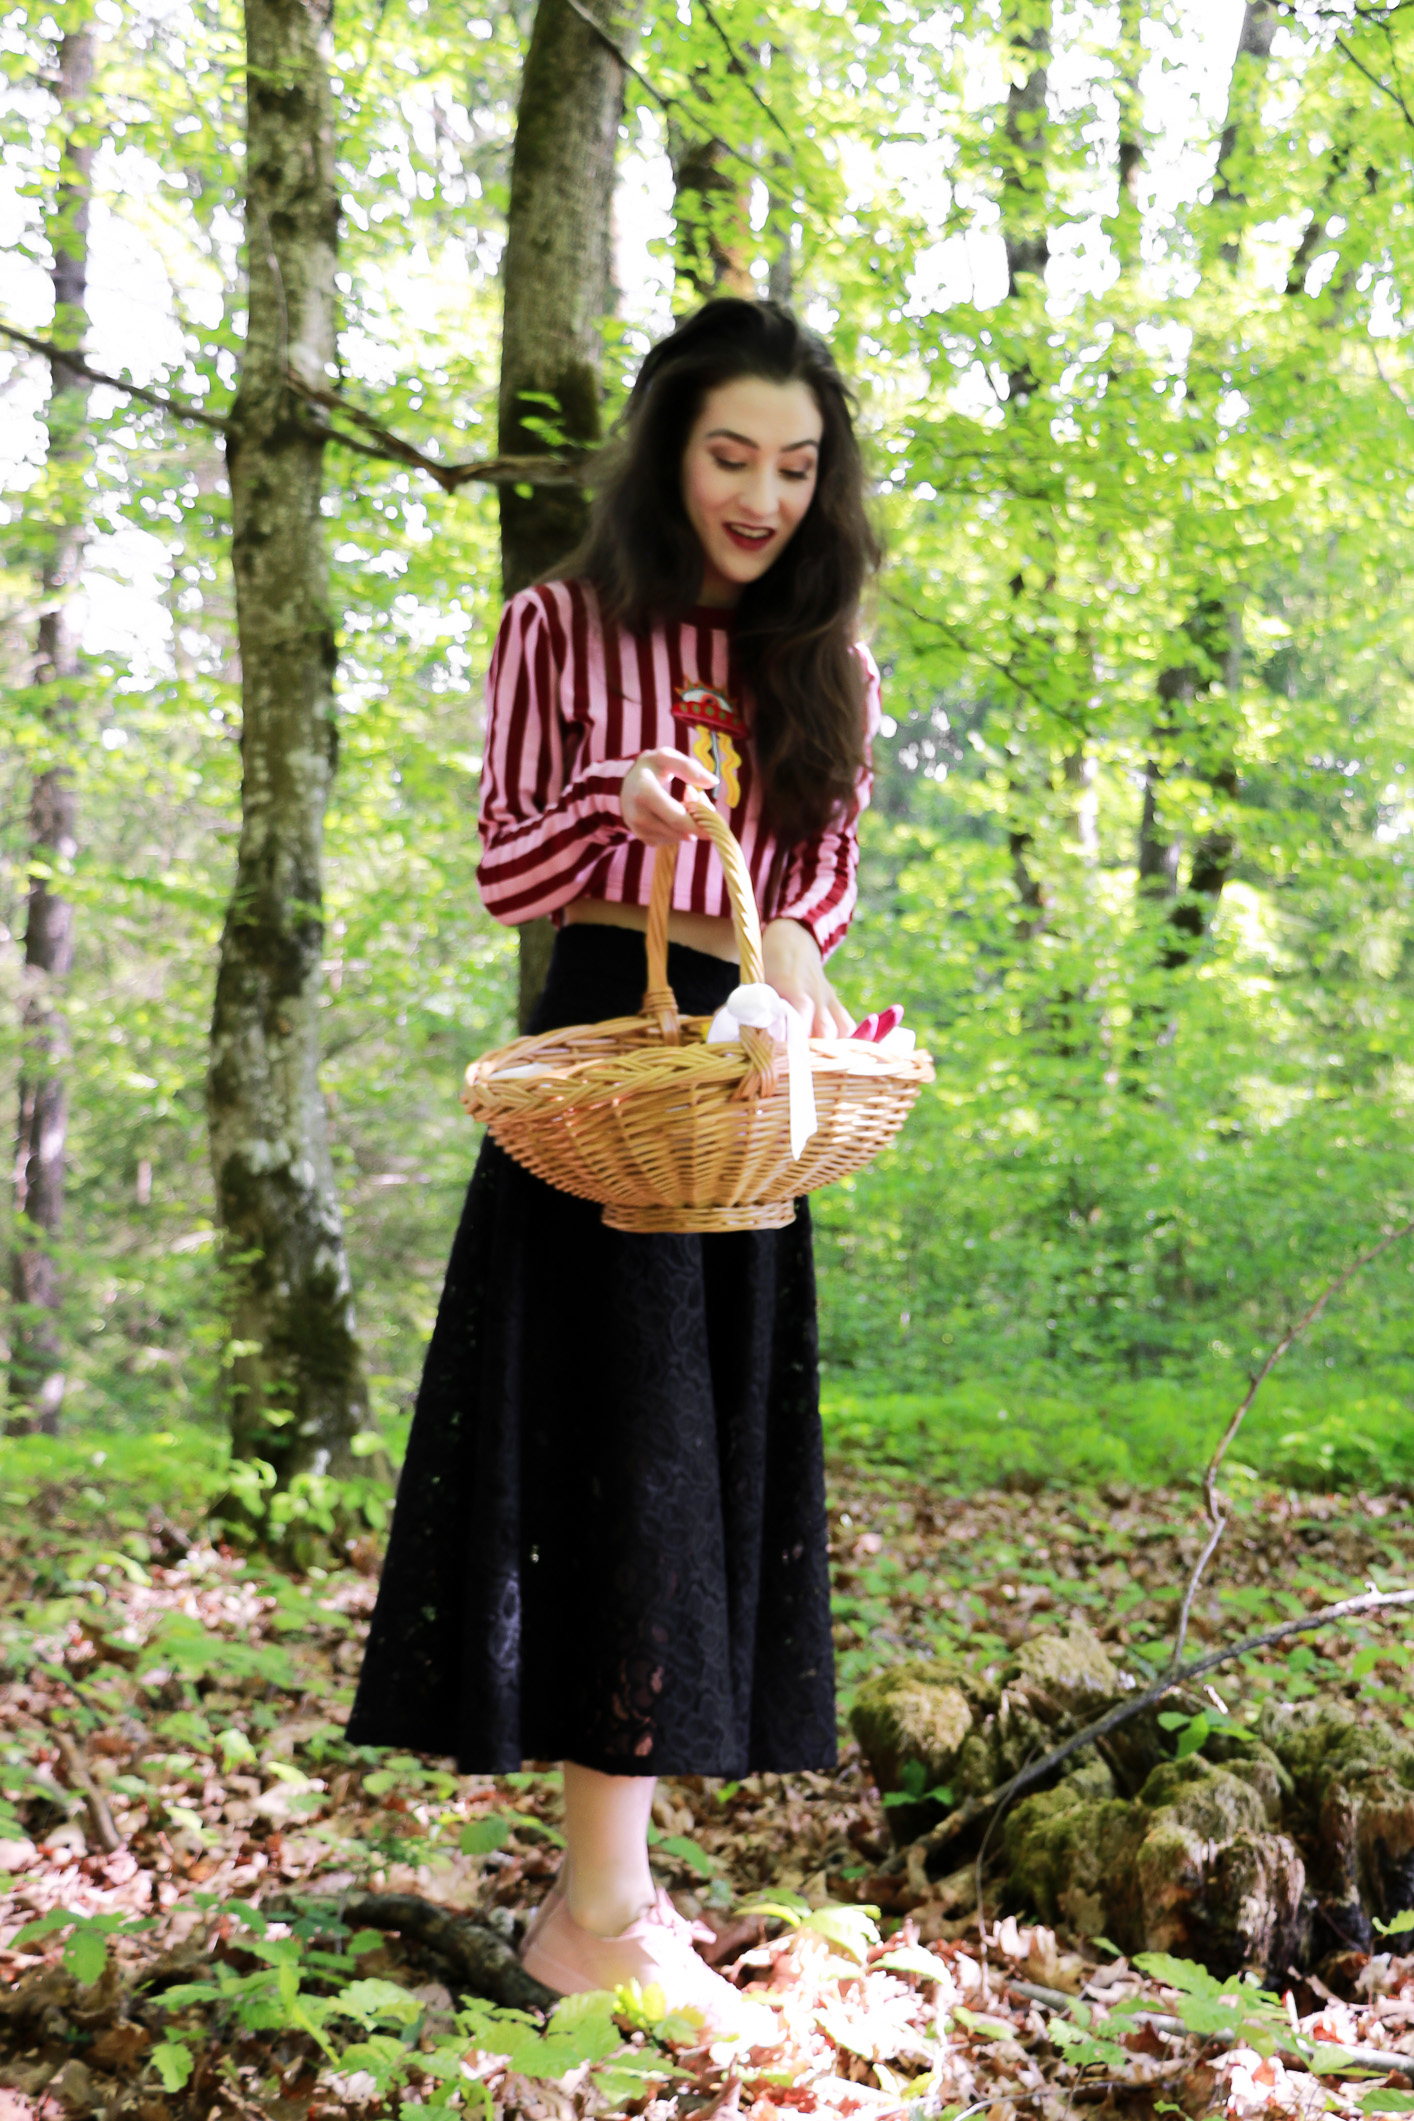 Fashion blogger Veronika Lipar of Brunette From Wall Street on how to style pink and red striped cropped top, black midi skirt and pink pale sneakers for Easter Egg hunt